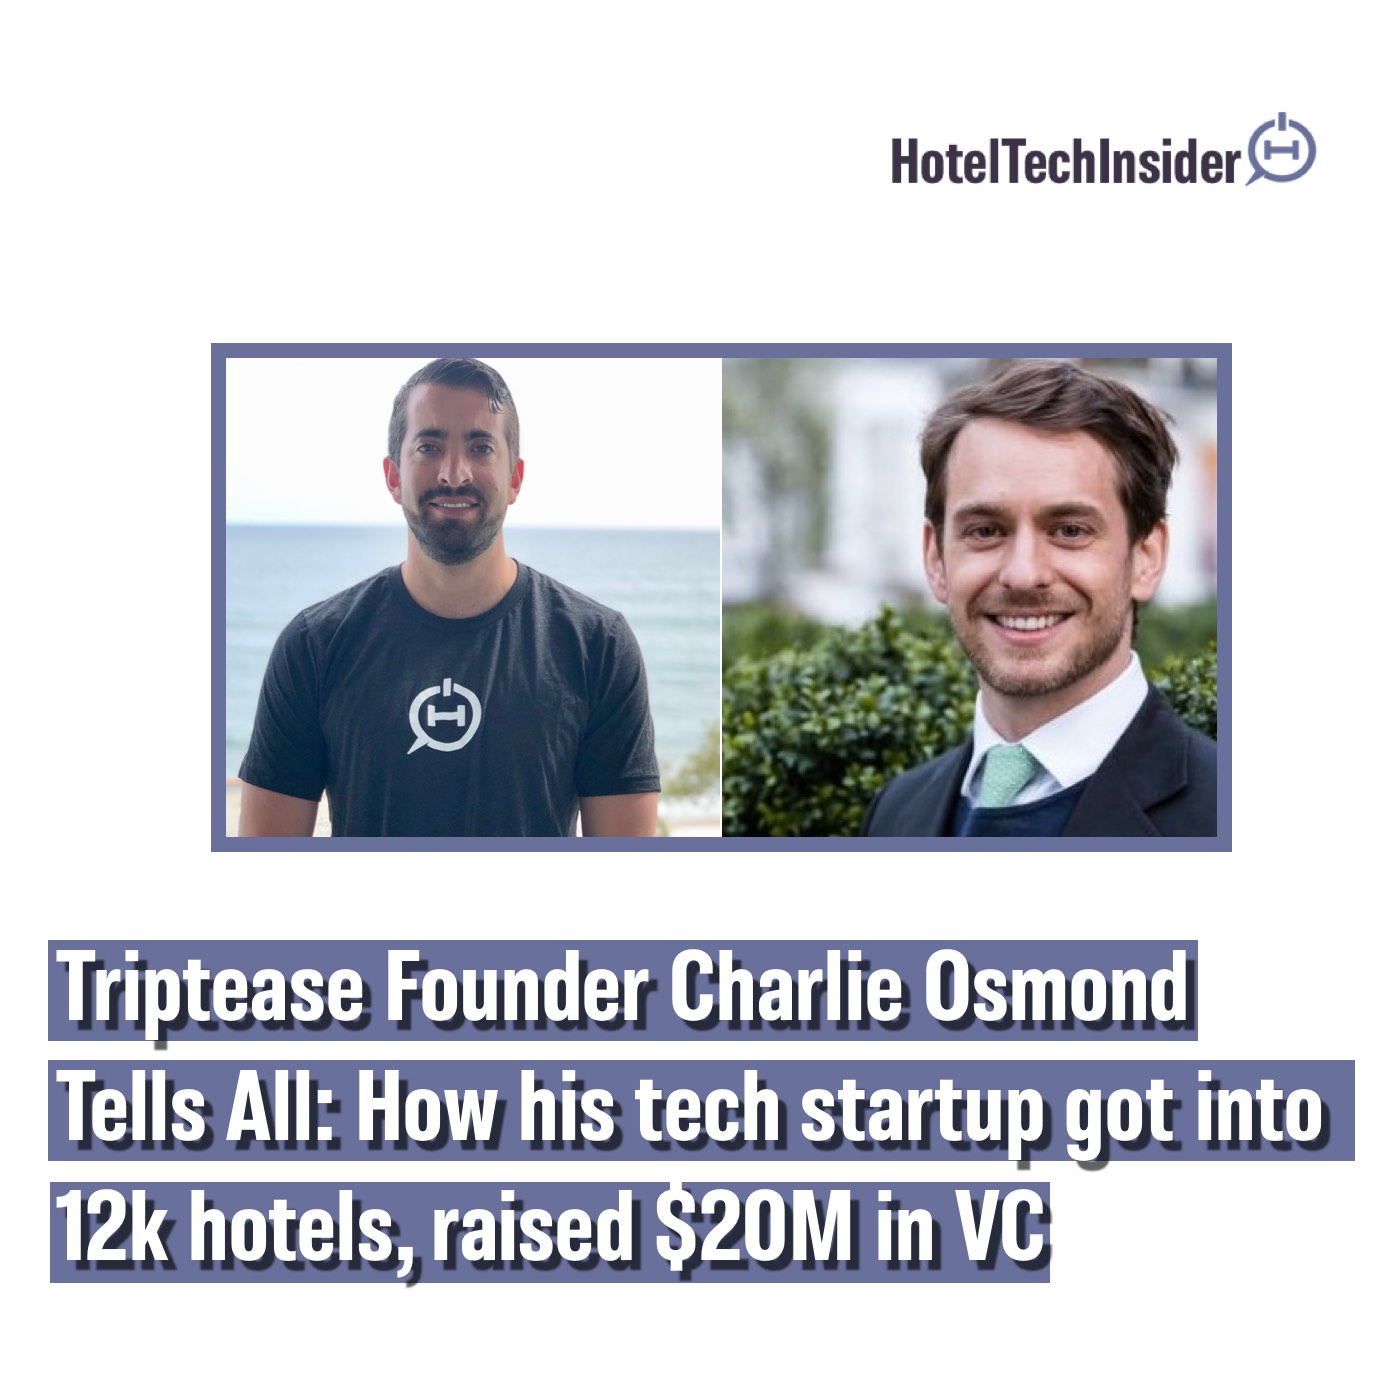 Triptease Founder Charlie Osmond Tells All: How his tech startup got into 12k hotels, raised $20M in venture funding and beat a $65B company